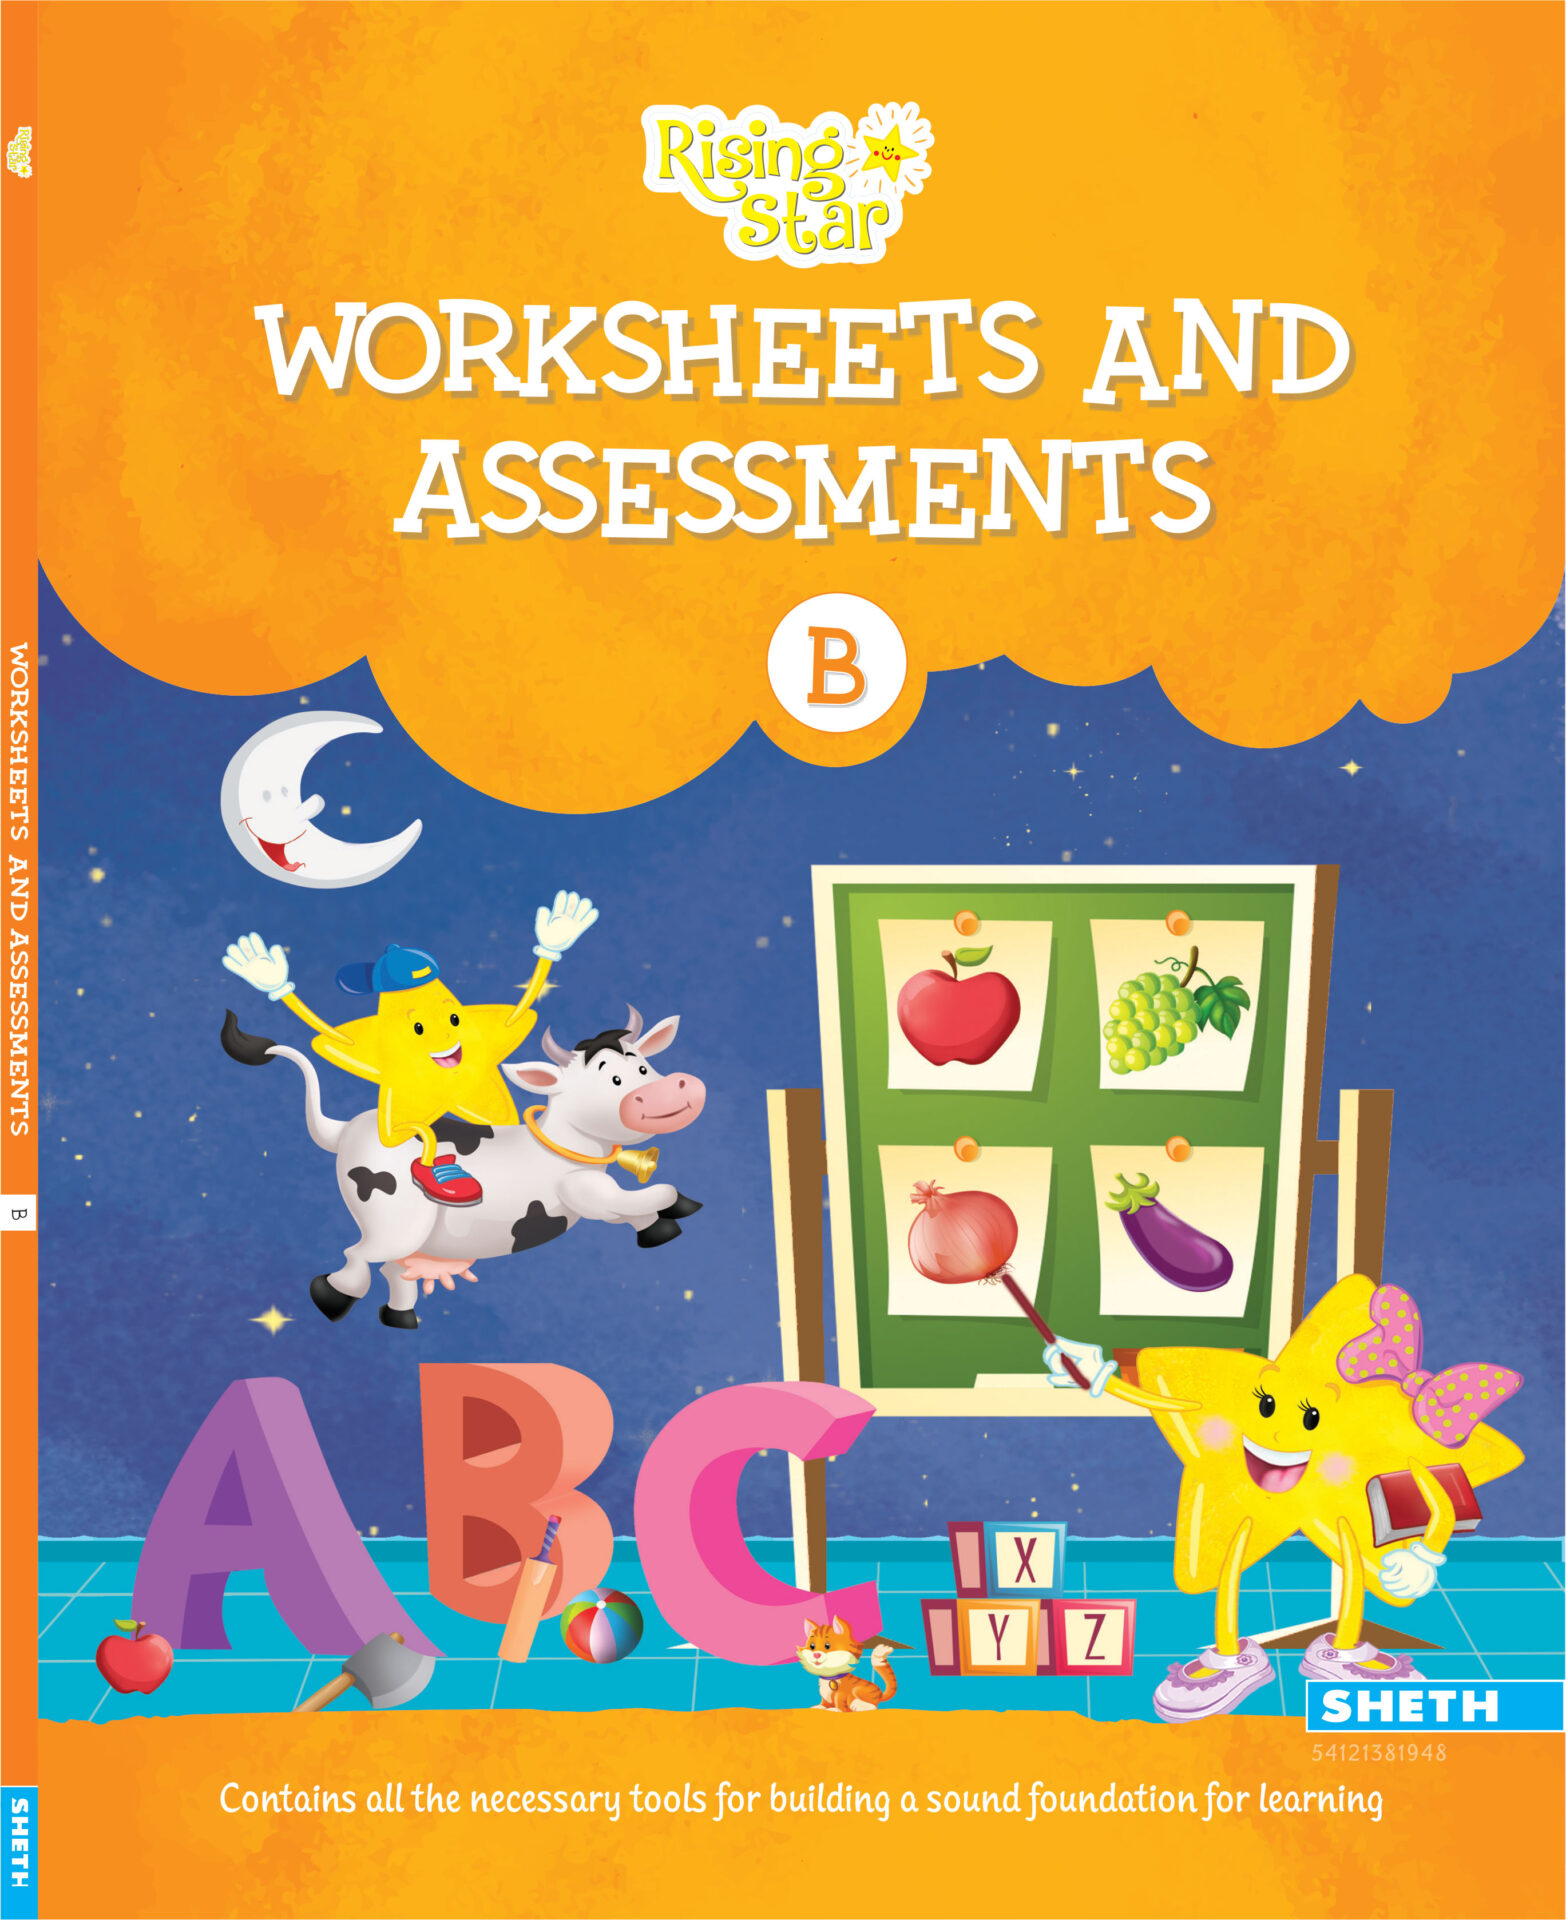 Rising Star Worksheets and Assessments B 0 1